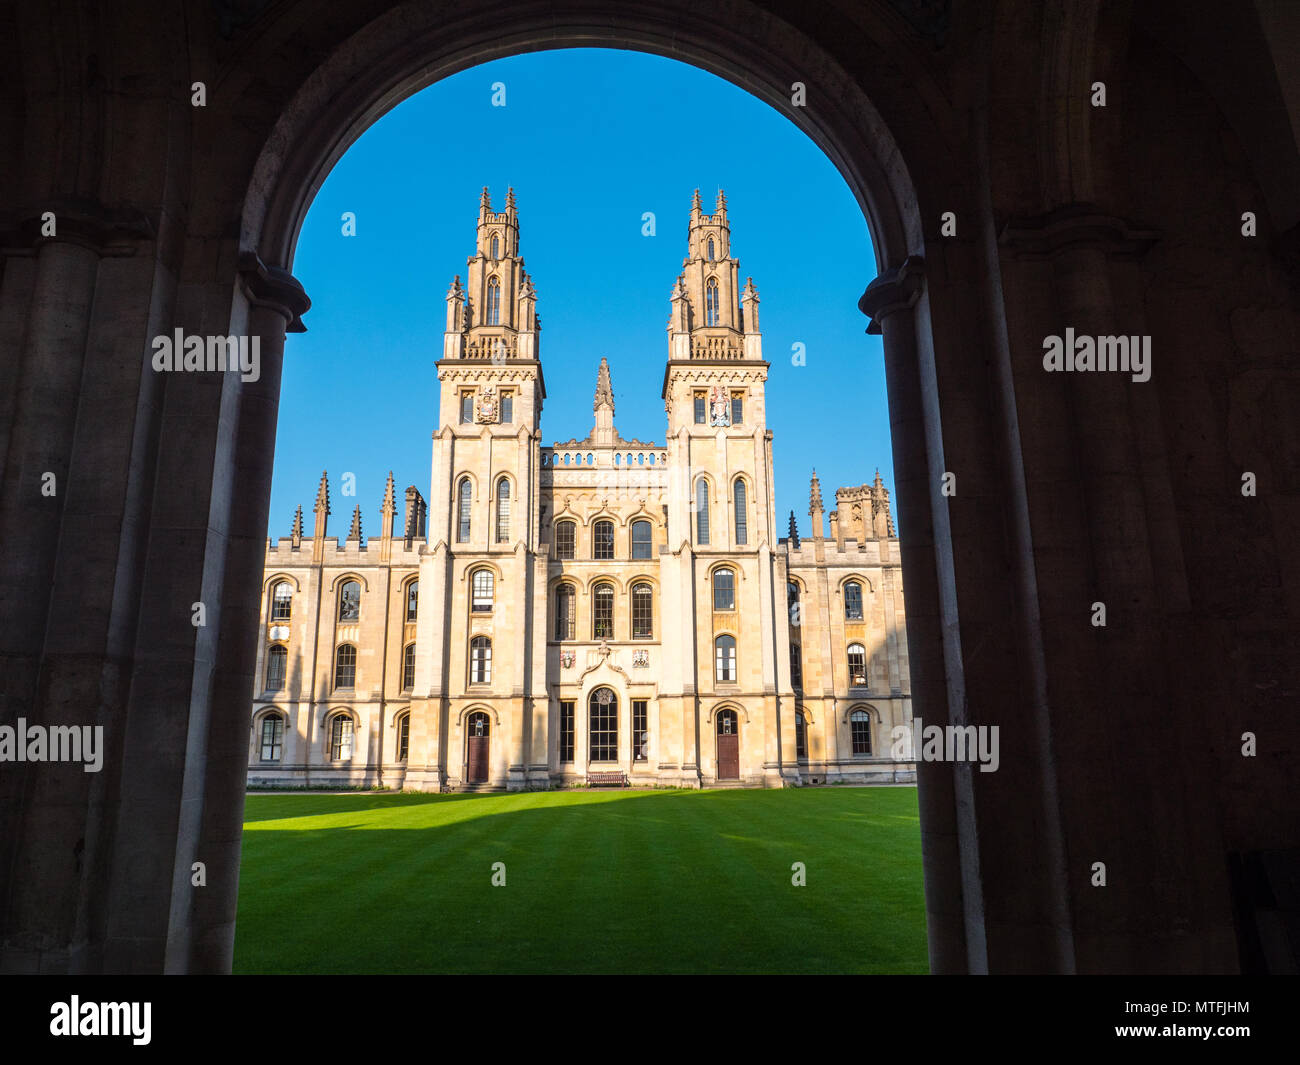 All Souls College, (College of the souls of all the faithful departed), Worlds Hardest Entrance Exam, Oxford University, Oxford, England, UK, GB. - Stock Image